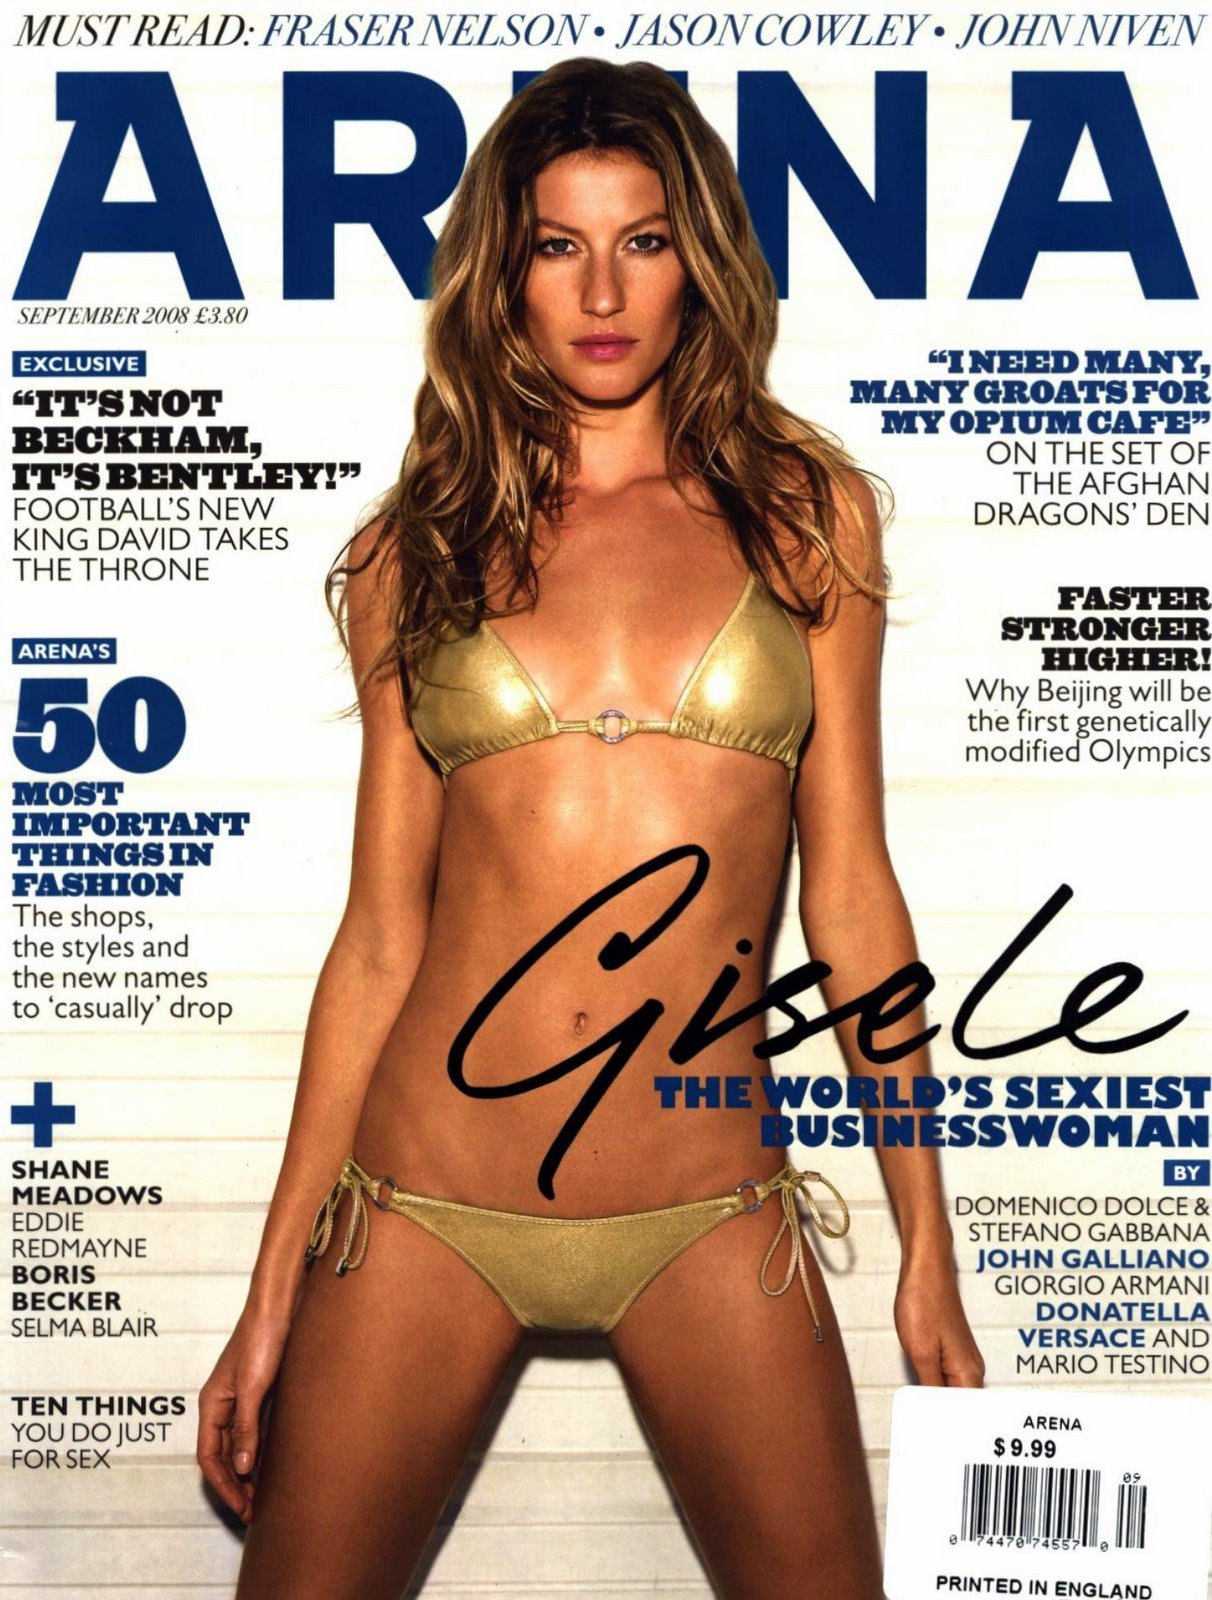 Gisele Bundchen in Arena